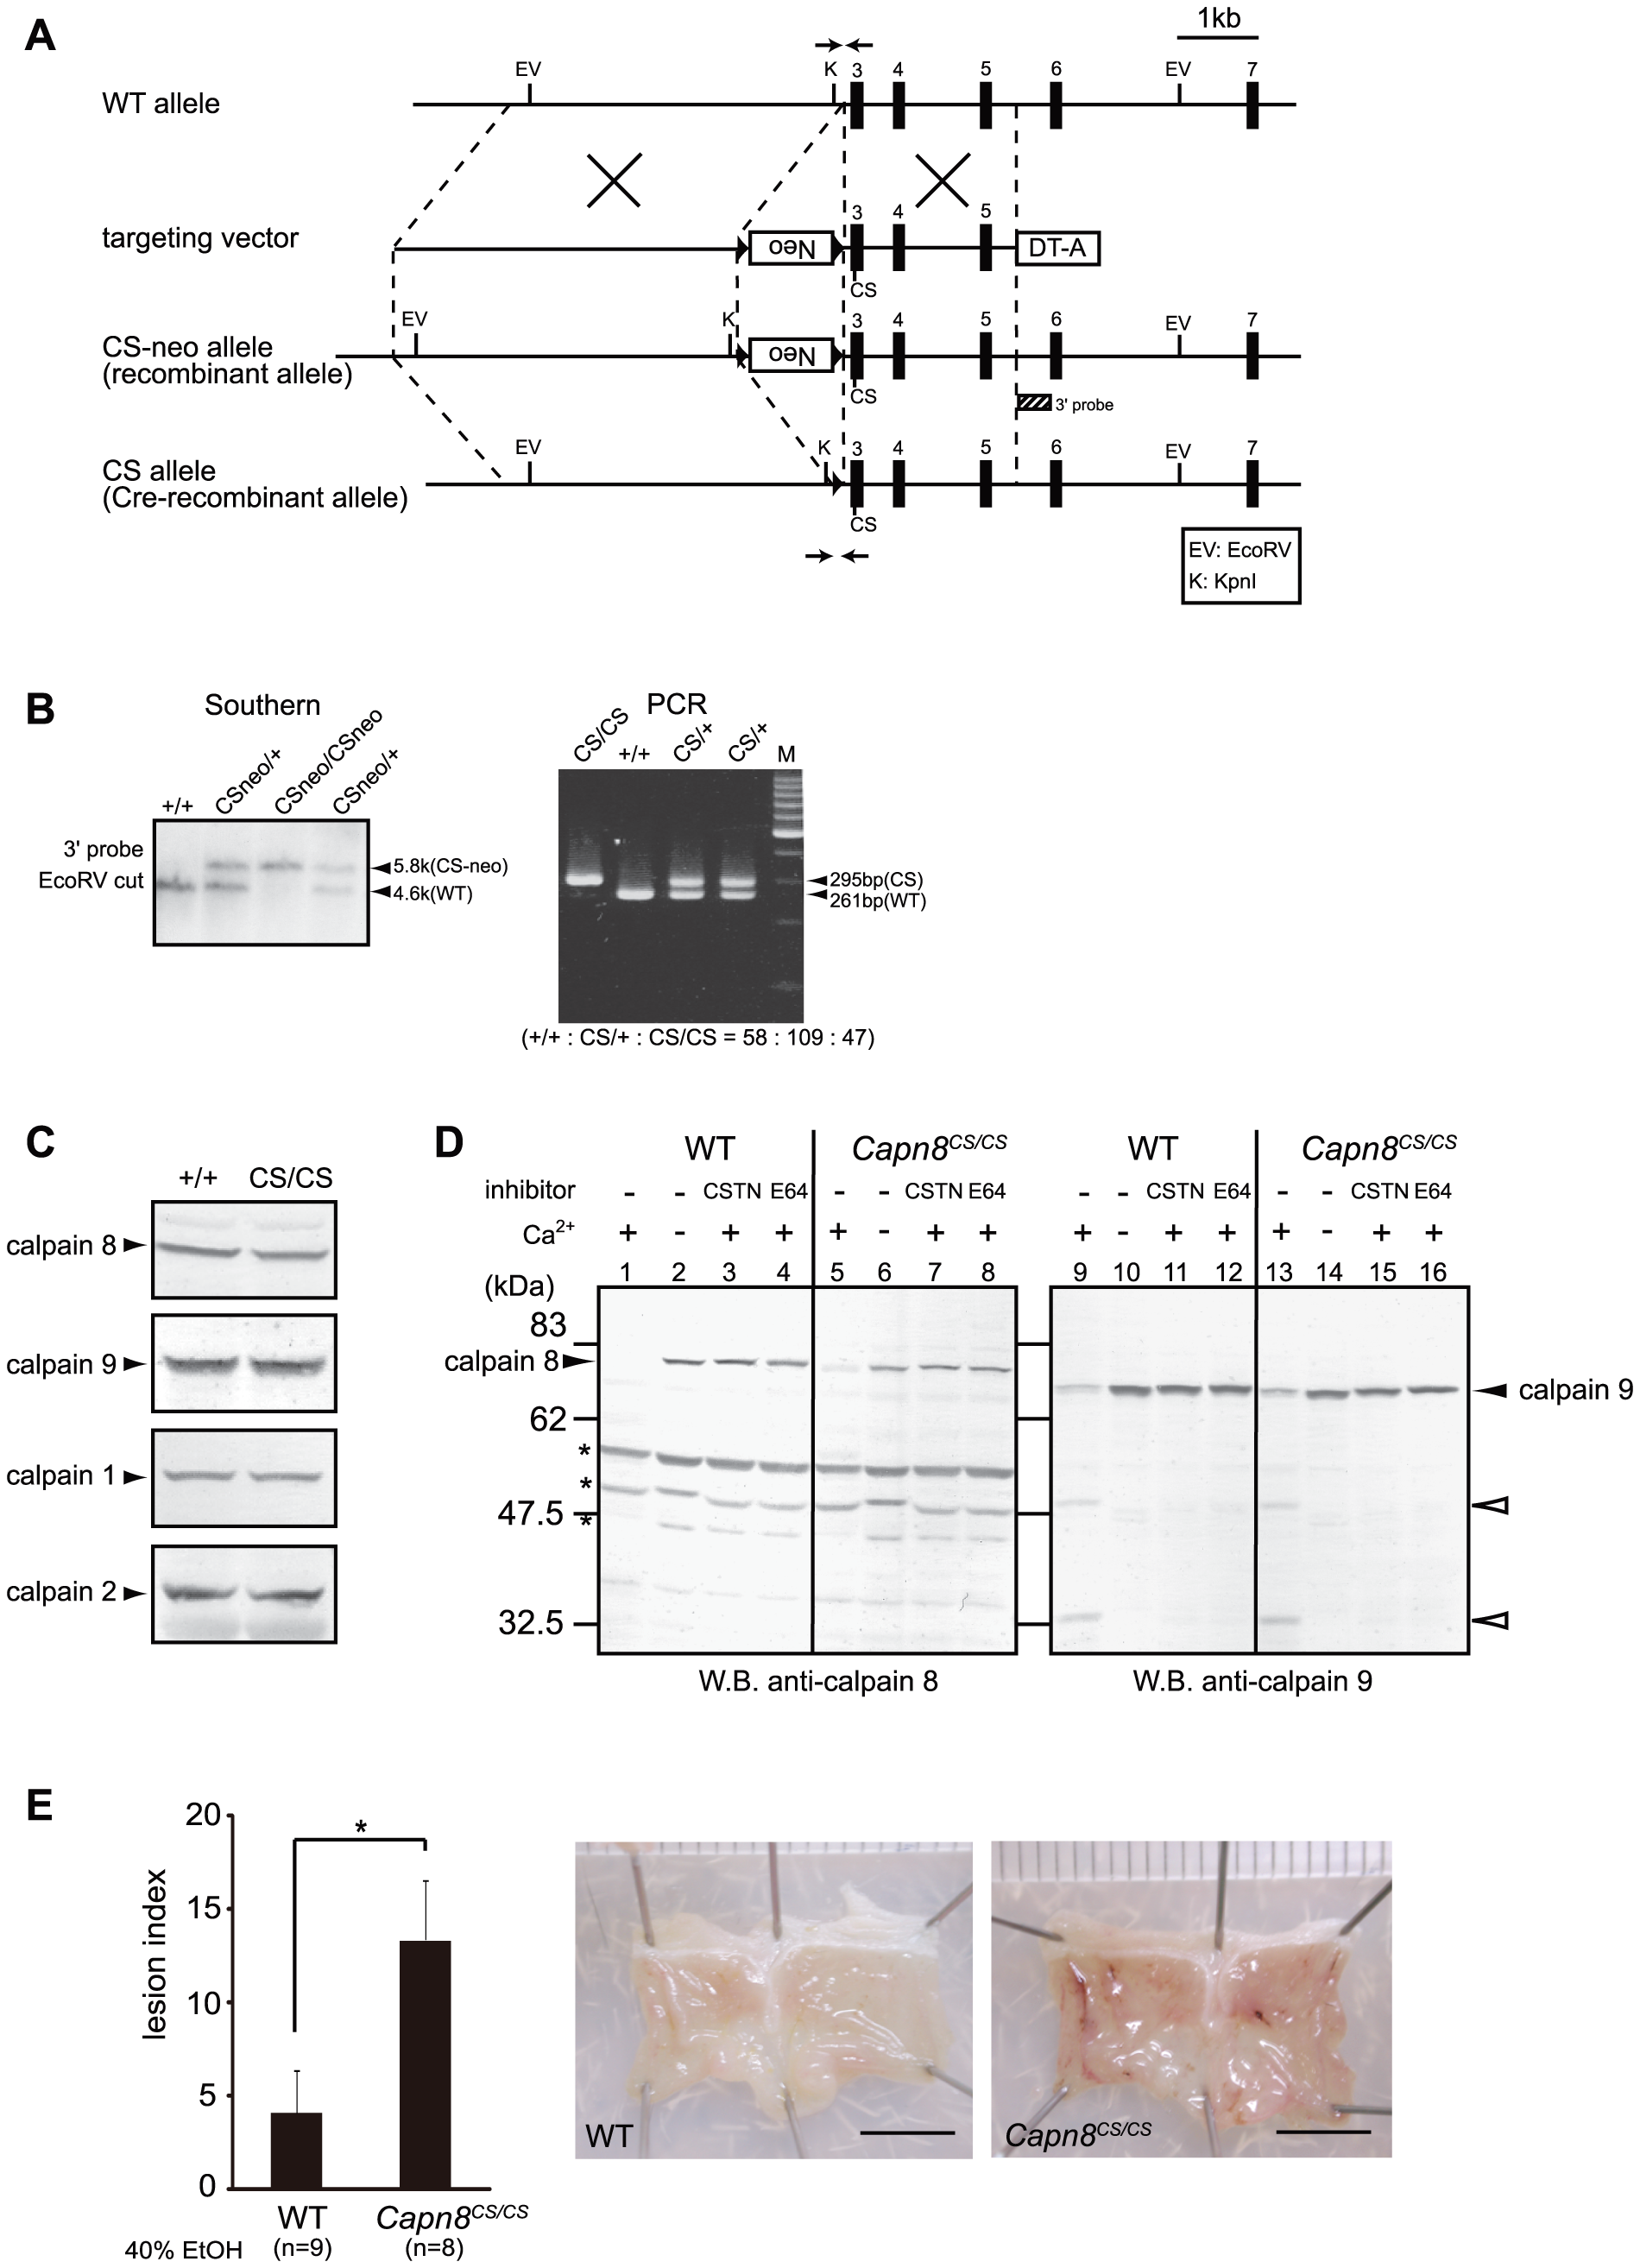 <i>Capn8<sup>CS/CS</sup></i> mice are susceptible to ethanol-induced mucosal lesions.